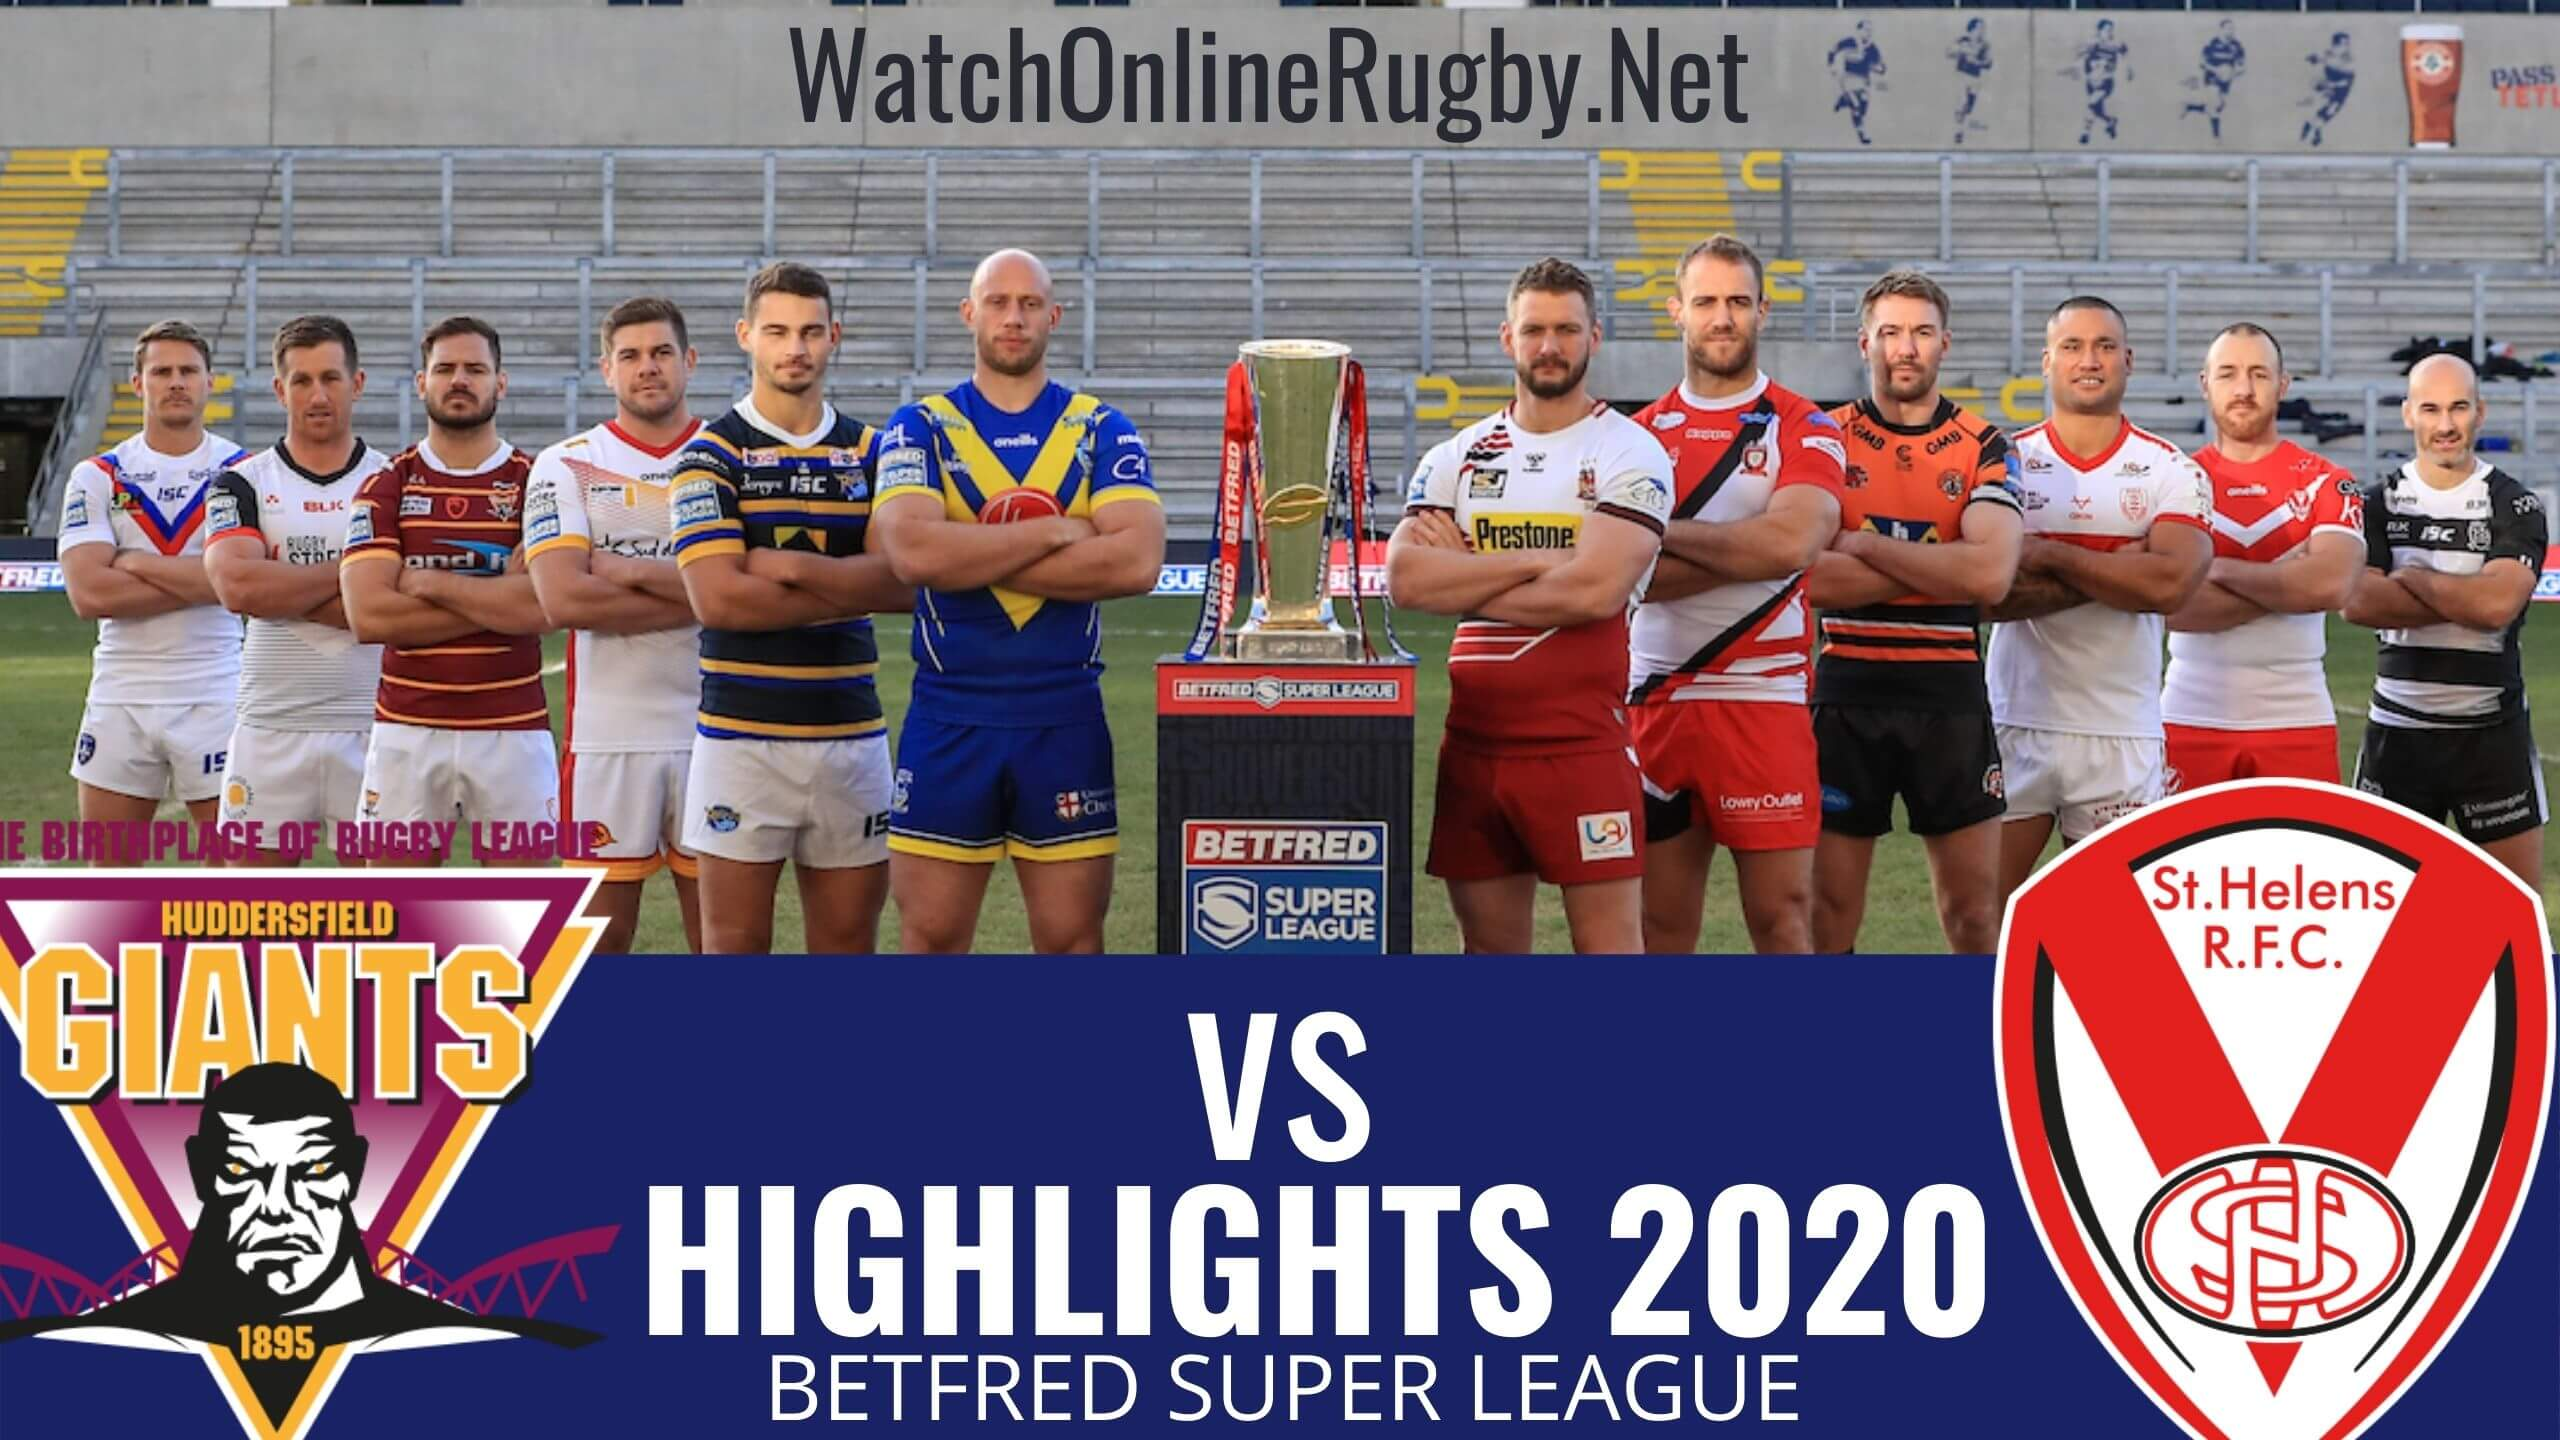 Giants Vs St Helens Highlights 2020 Rd 11